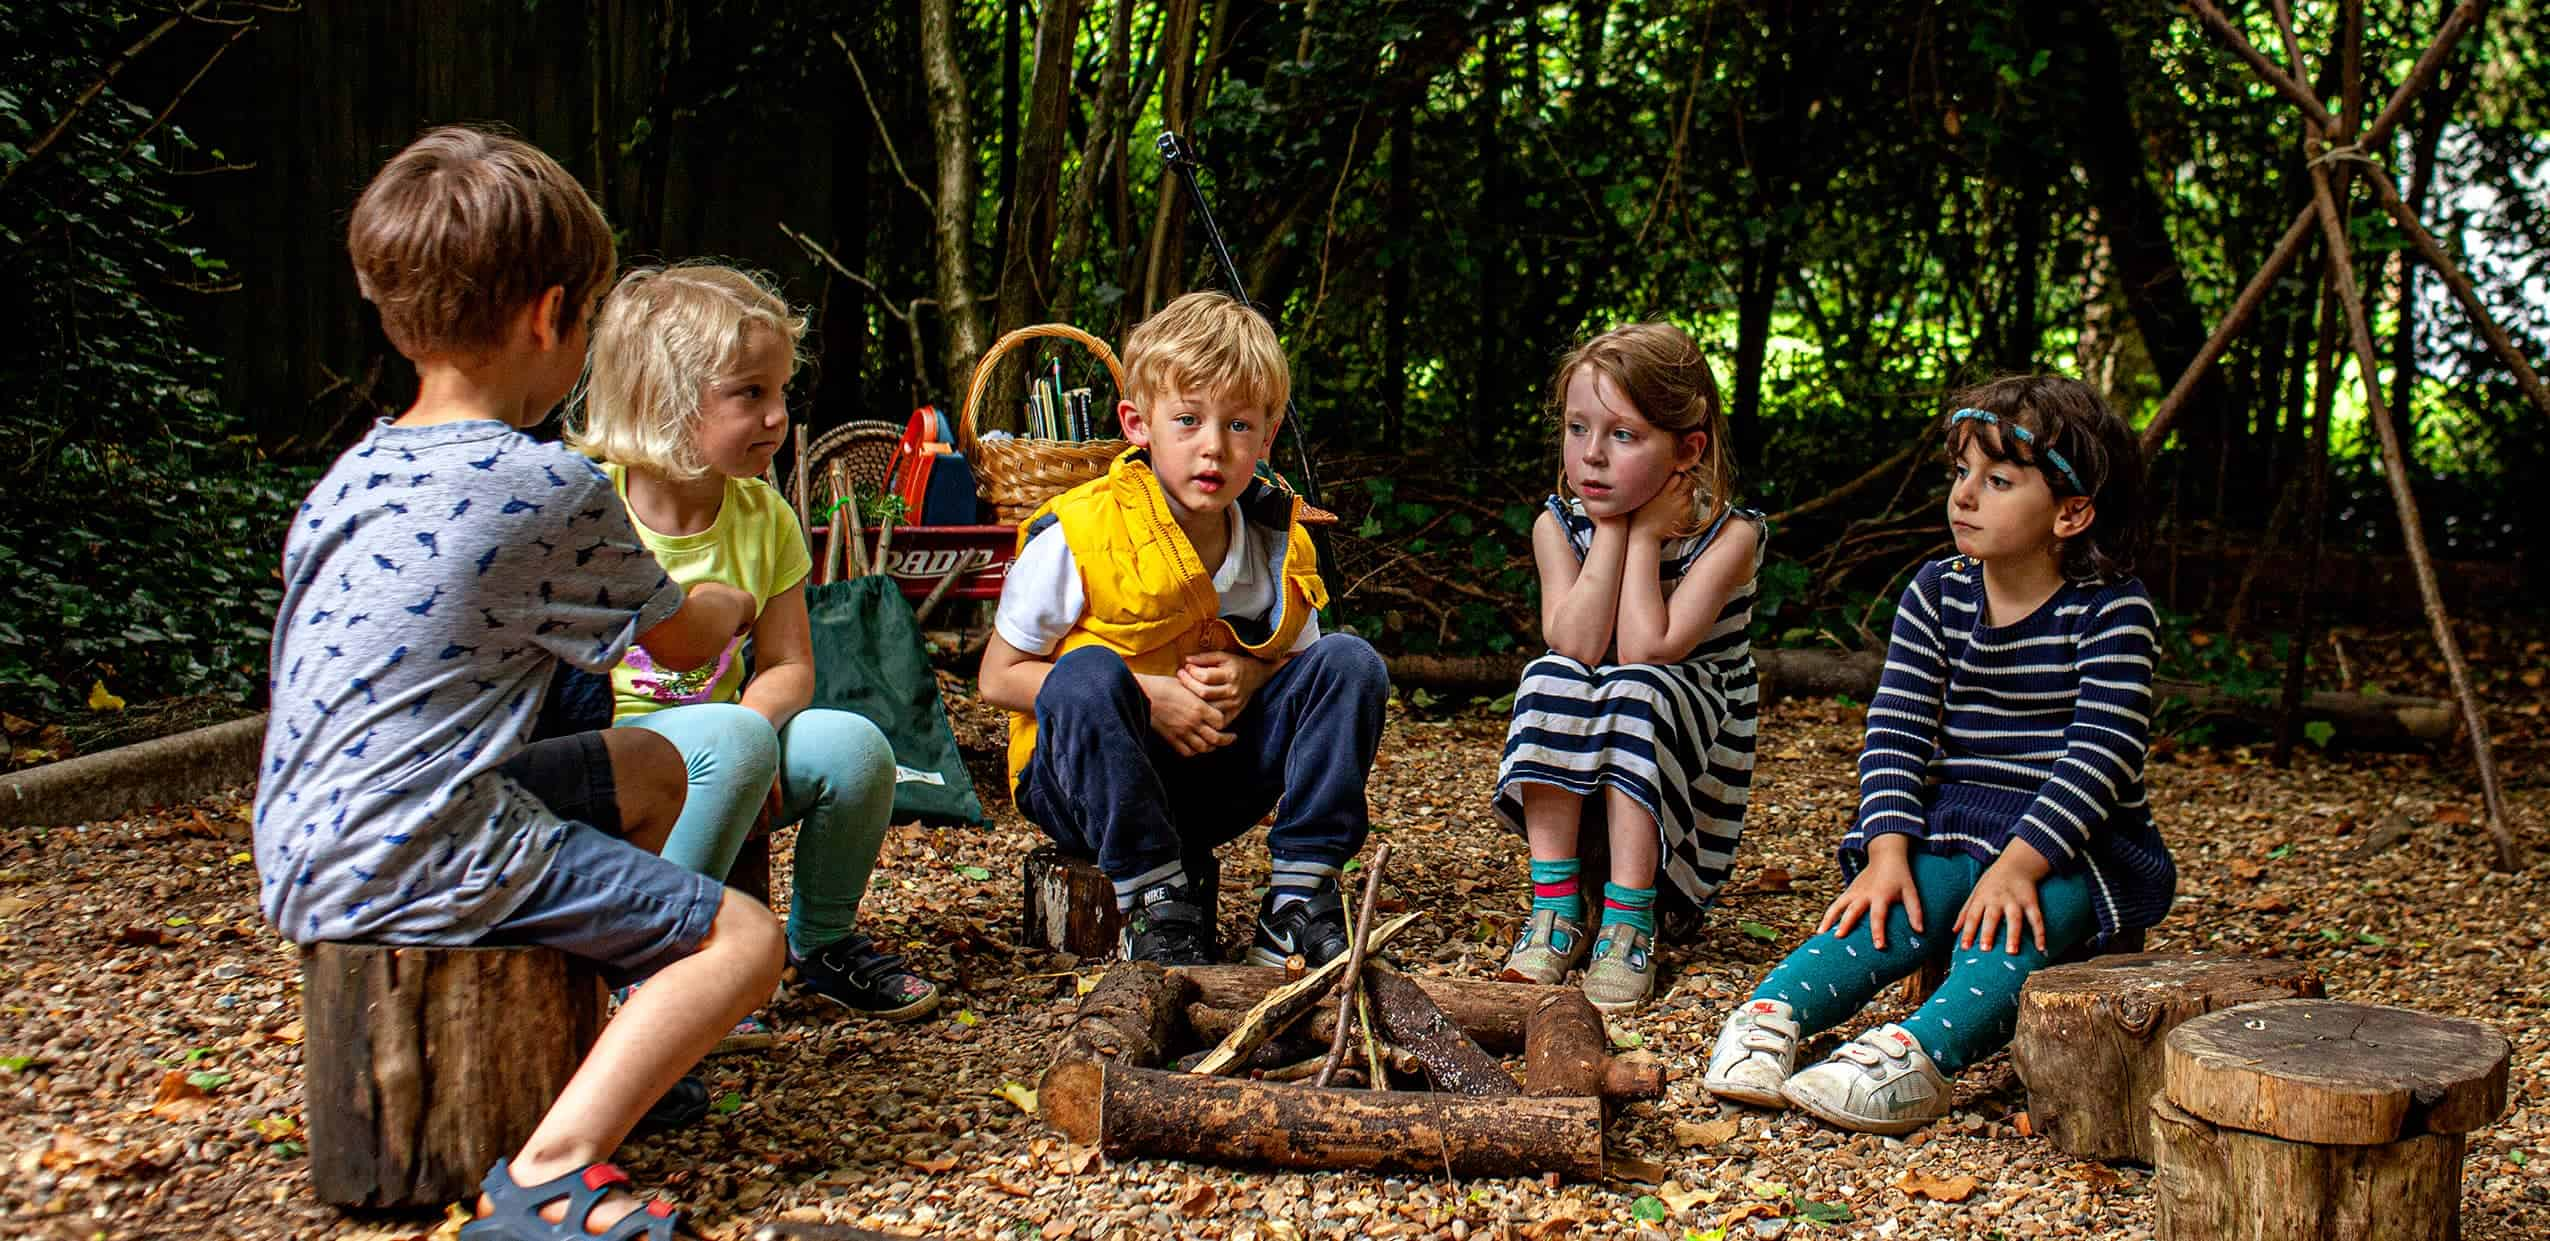 Five children sitting round unlit wood pile campfire